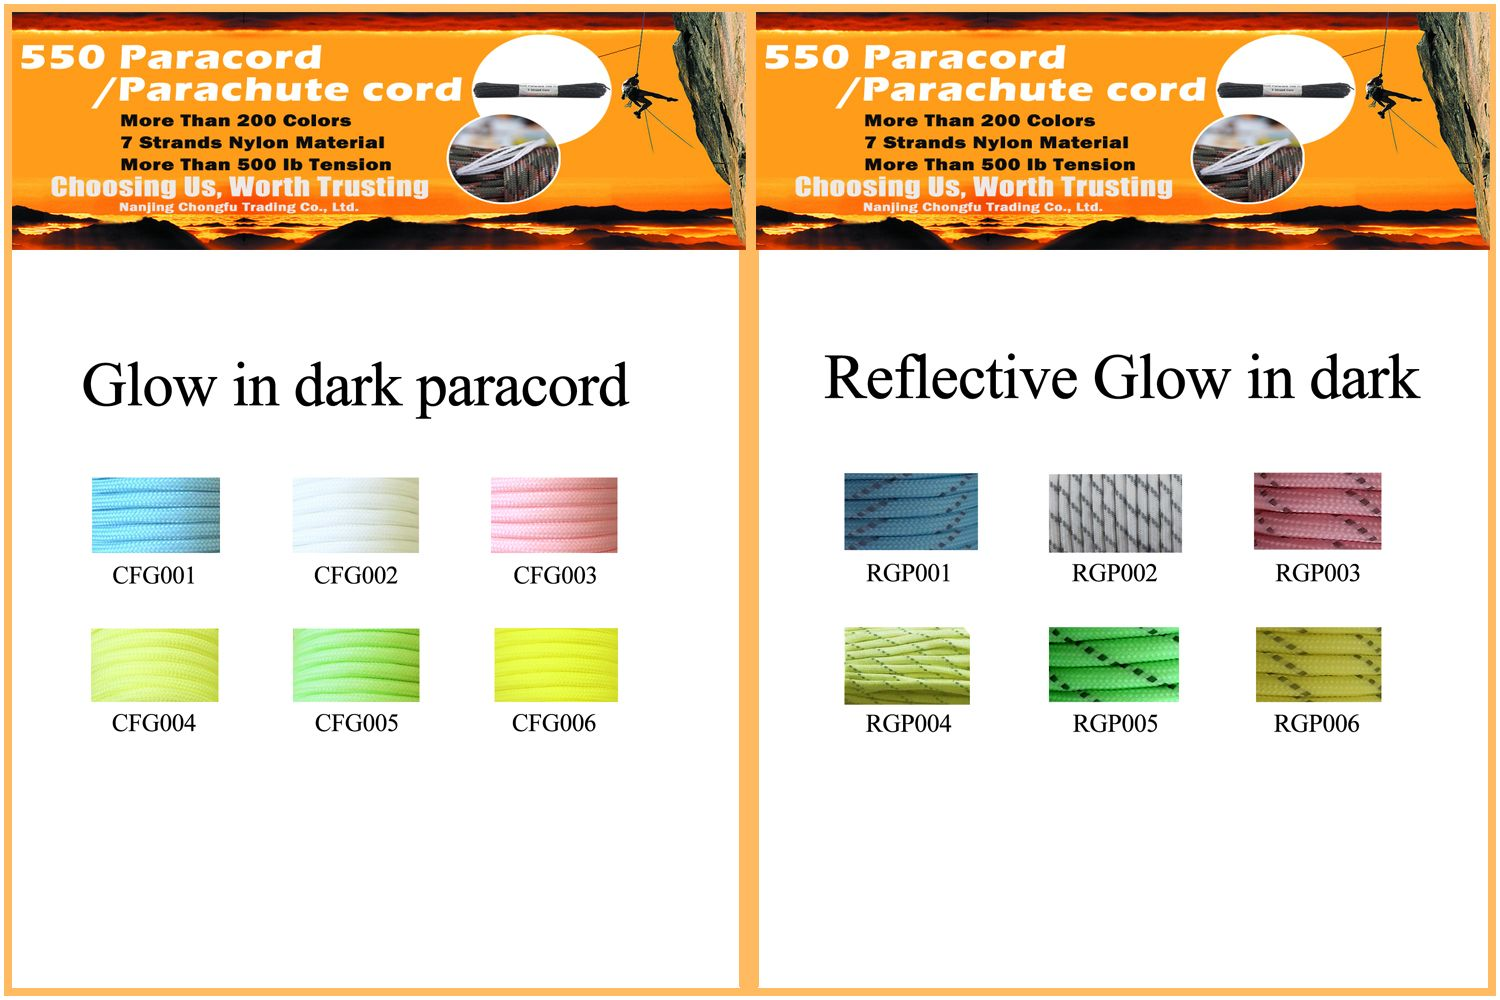 New Colors Paracord Chart Glow In Dark Paracord Chart Glow In The Dark Paracord Color